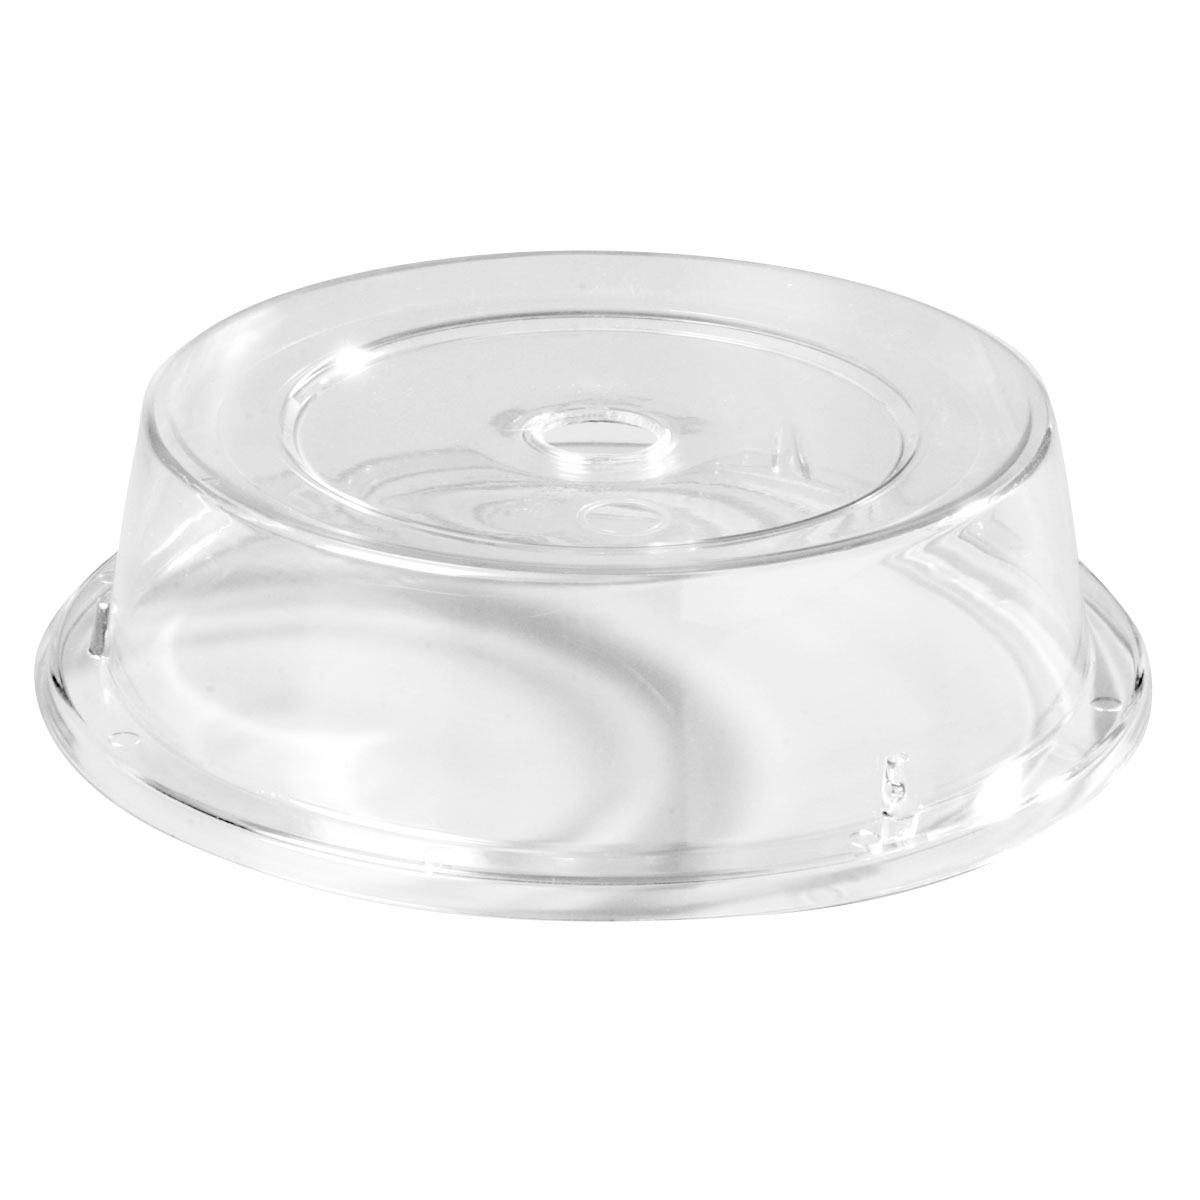 PLATE COVER POLYCARB - CLEAR (FITS 230 and 250mm PLATES)